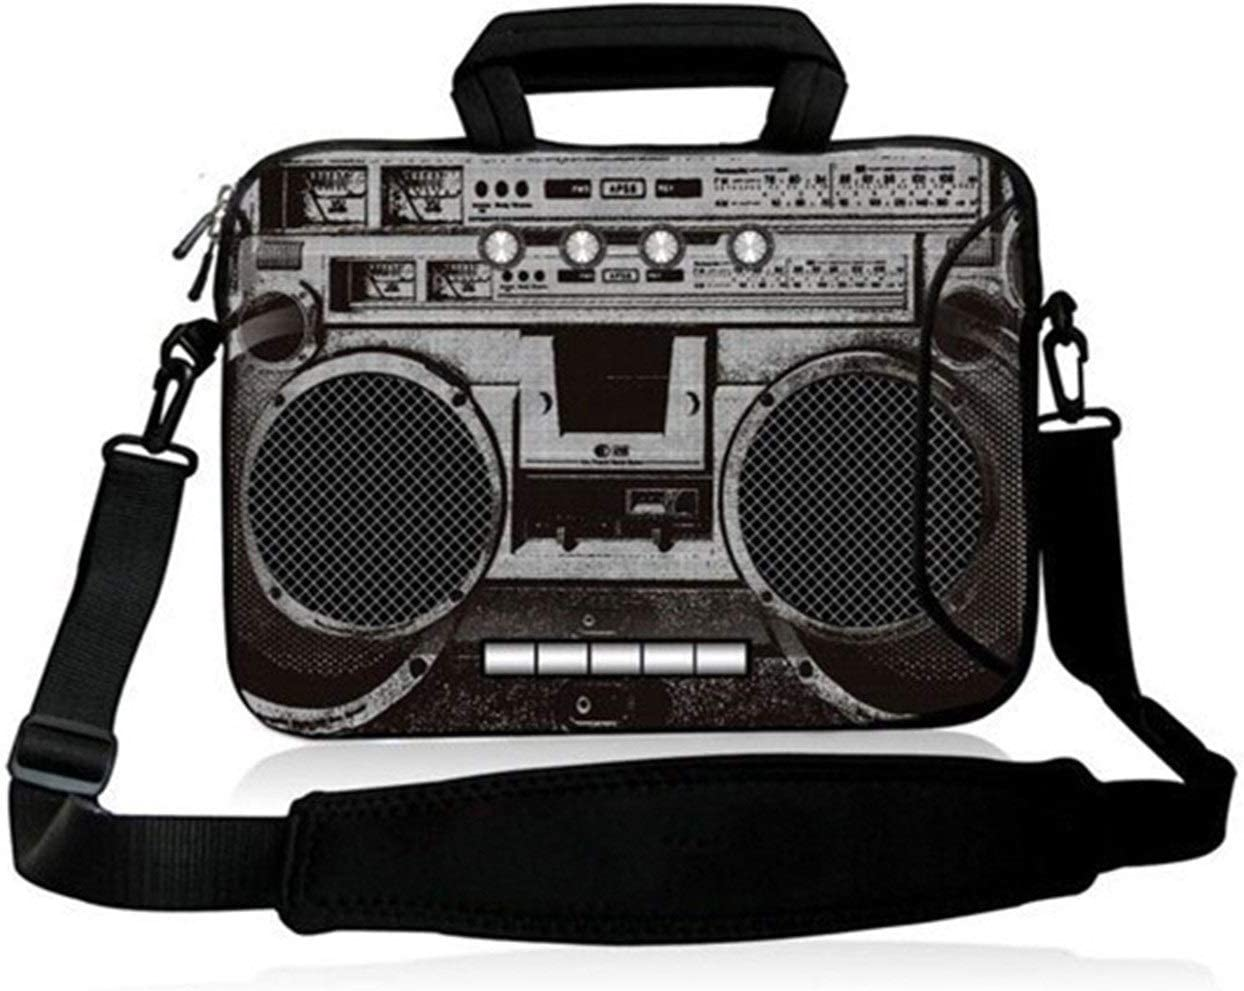 2021new shipping free shipping BXJPN Laptop Shoulder Inexpensive Pouch 10.1 12 15.6 13.3 17.3 Messenger 14